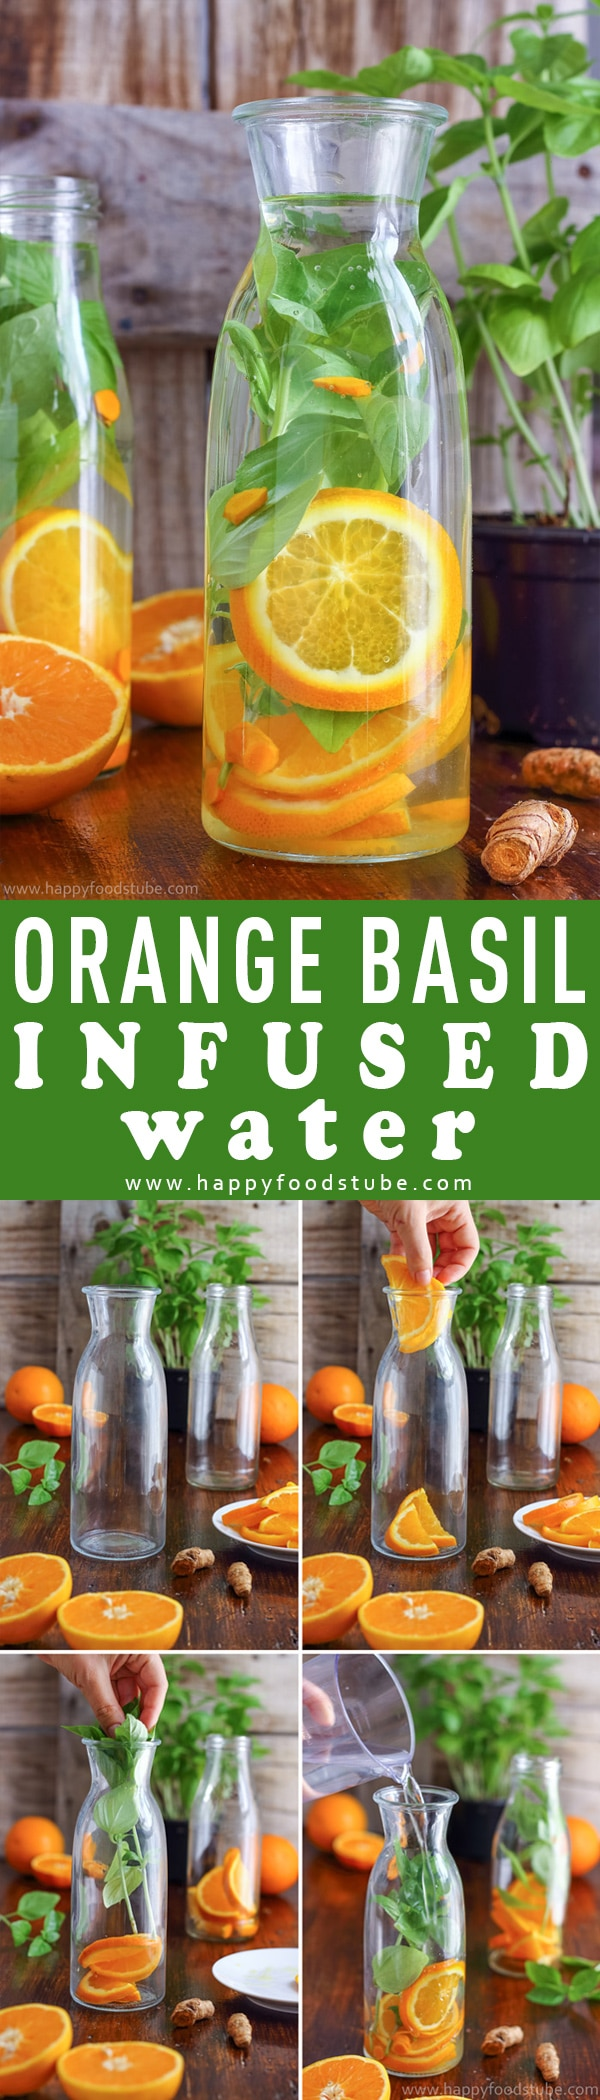 This orange basil infused water is the perfect drink for hot summer days. It's refreshing, tasty and easy to make. Stay hydrated with this healthy flavored water. Body detox and cleanse with infused water. Only 3 ingredients - orange, basil and turmeric